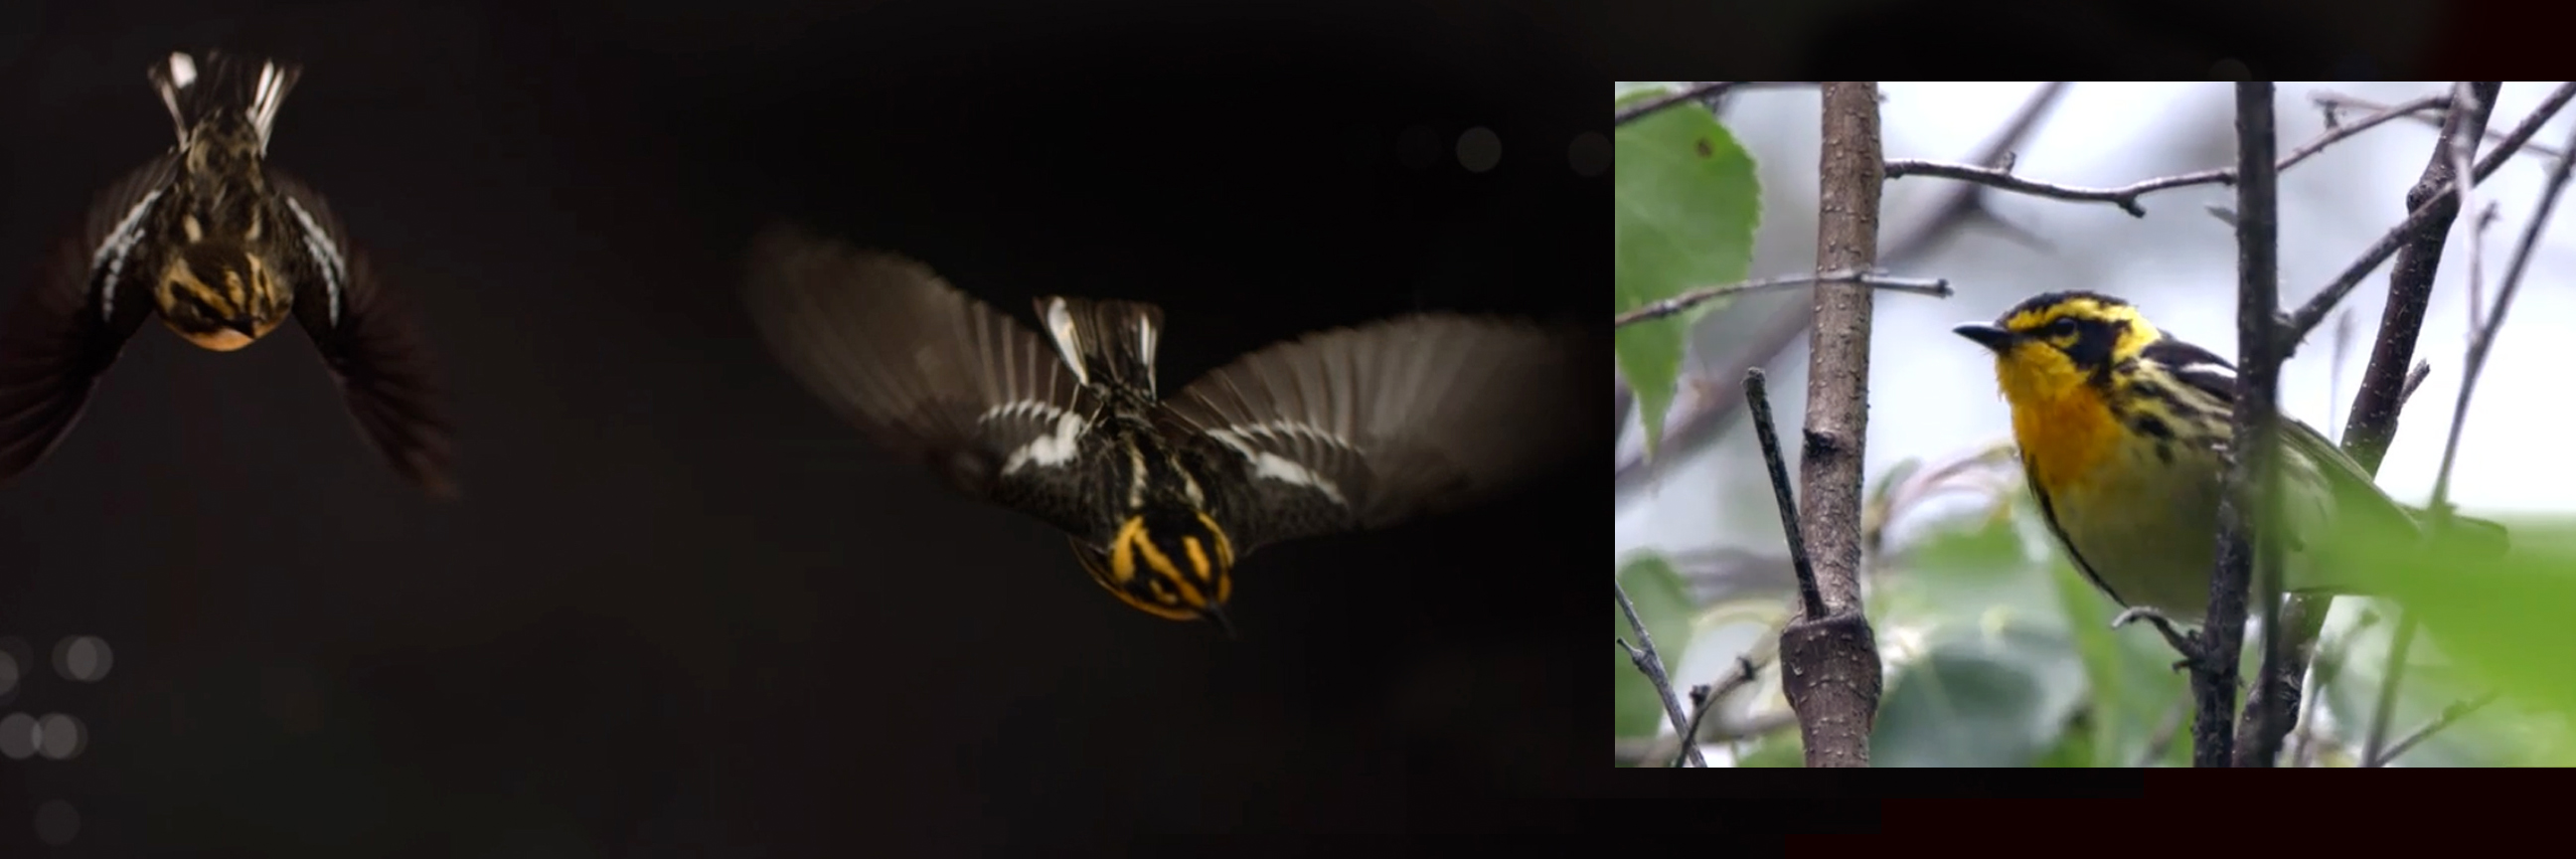 Blackburnian warblers are small forest songbirds. They measure from 11 to 13 cm (4.3 to 5.1 in) long, with a 20 to 22 cm (7.9 to 8.7 in) wingspan, and weigh 8 to 13 g (0.28 to 0.46 oz). This warbler is photographed by The Messenger crew in emulated night flight at the University of Western Ontario's Advanced Facility for Avian Research (AFAR) (left) and in the Boreal Forest (right).